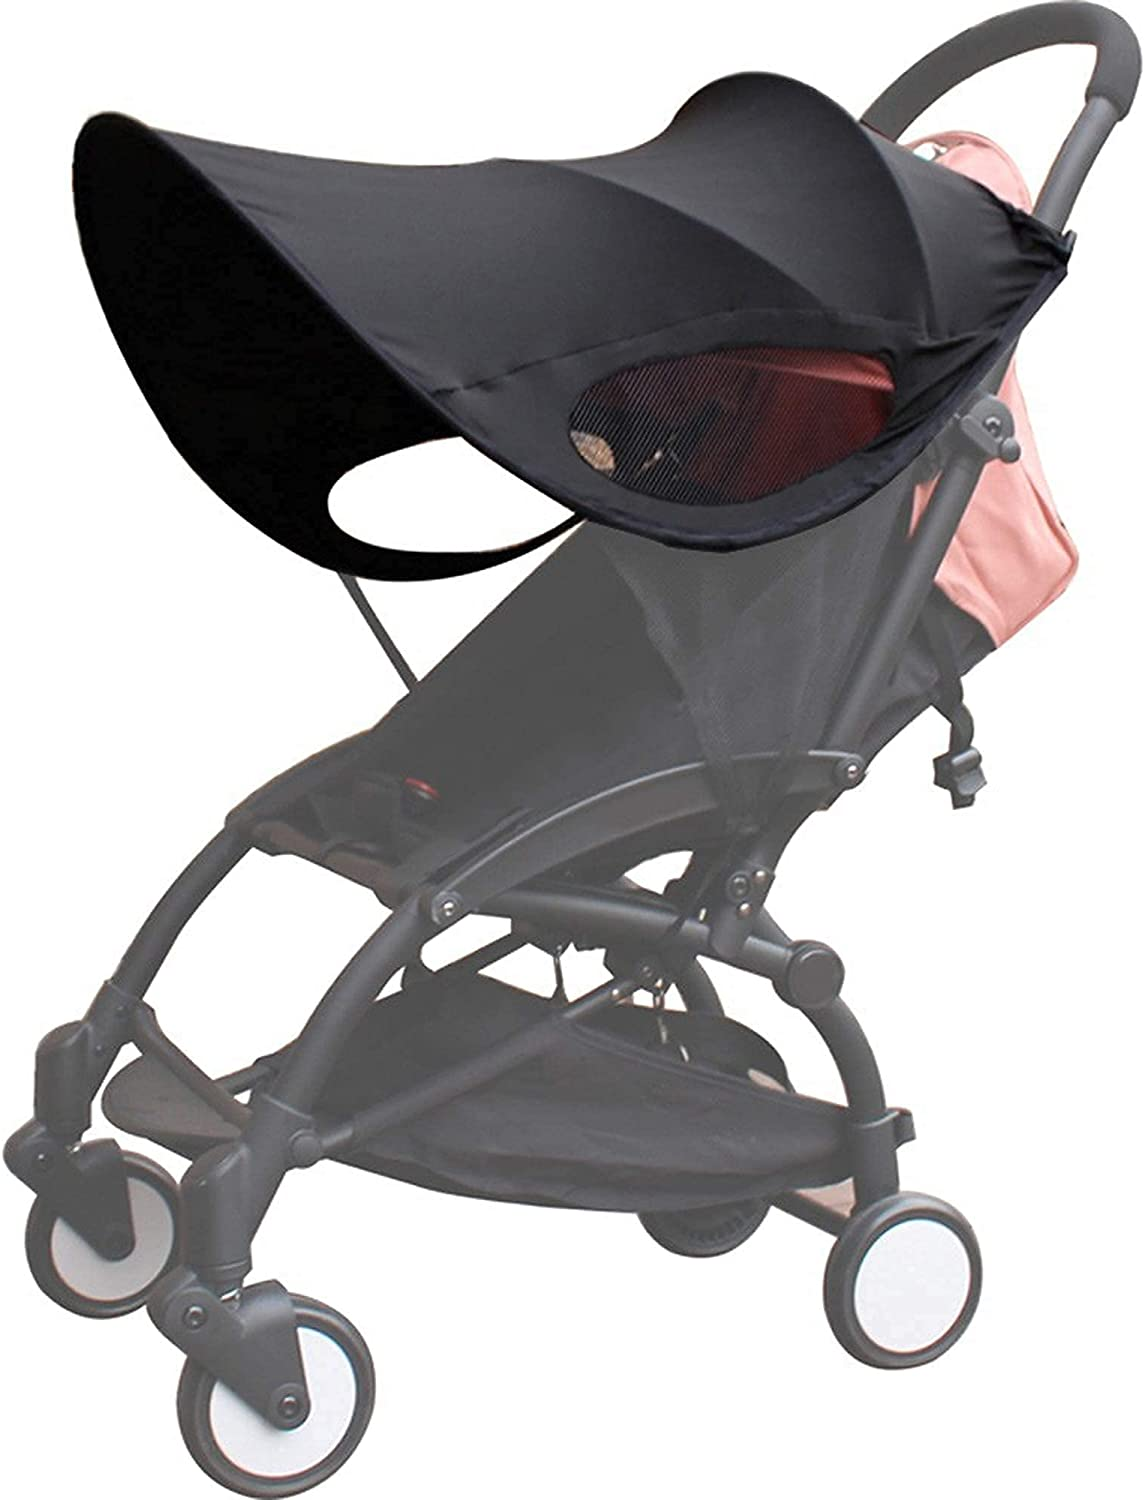 Ridecle Infant Toddler Sun Cover, Baby Stroller Sun Shade, Stroller Sun Cover, Universal Awning with Adjustable Strap, Anti-UV Protection Safety Cart Accessories for Baby